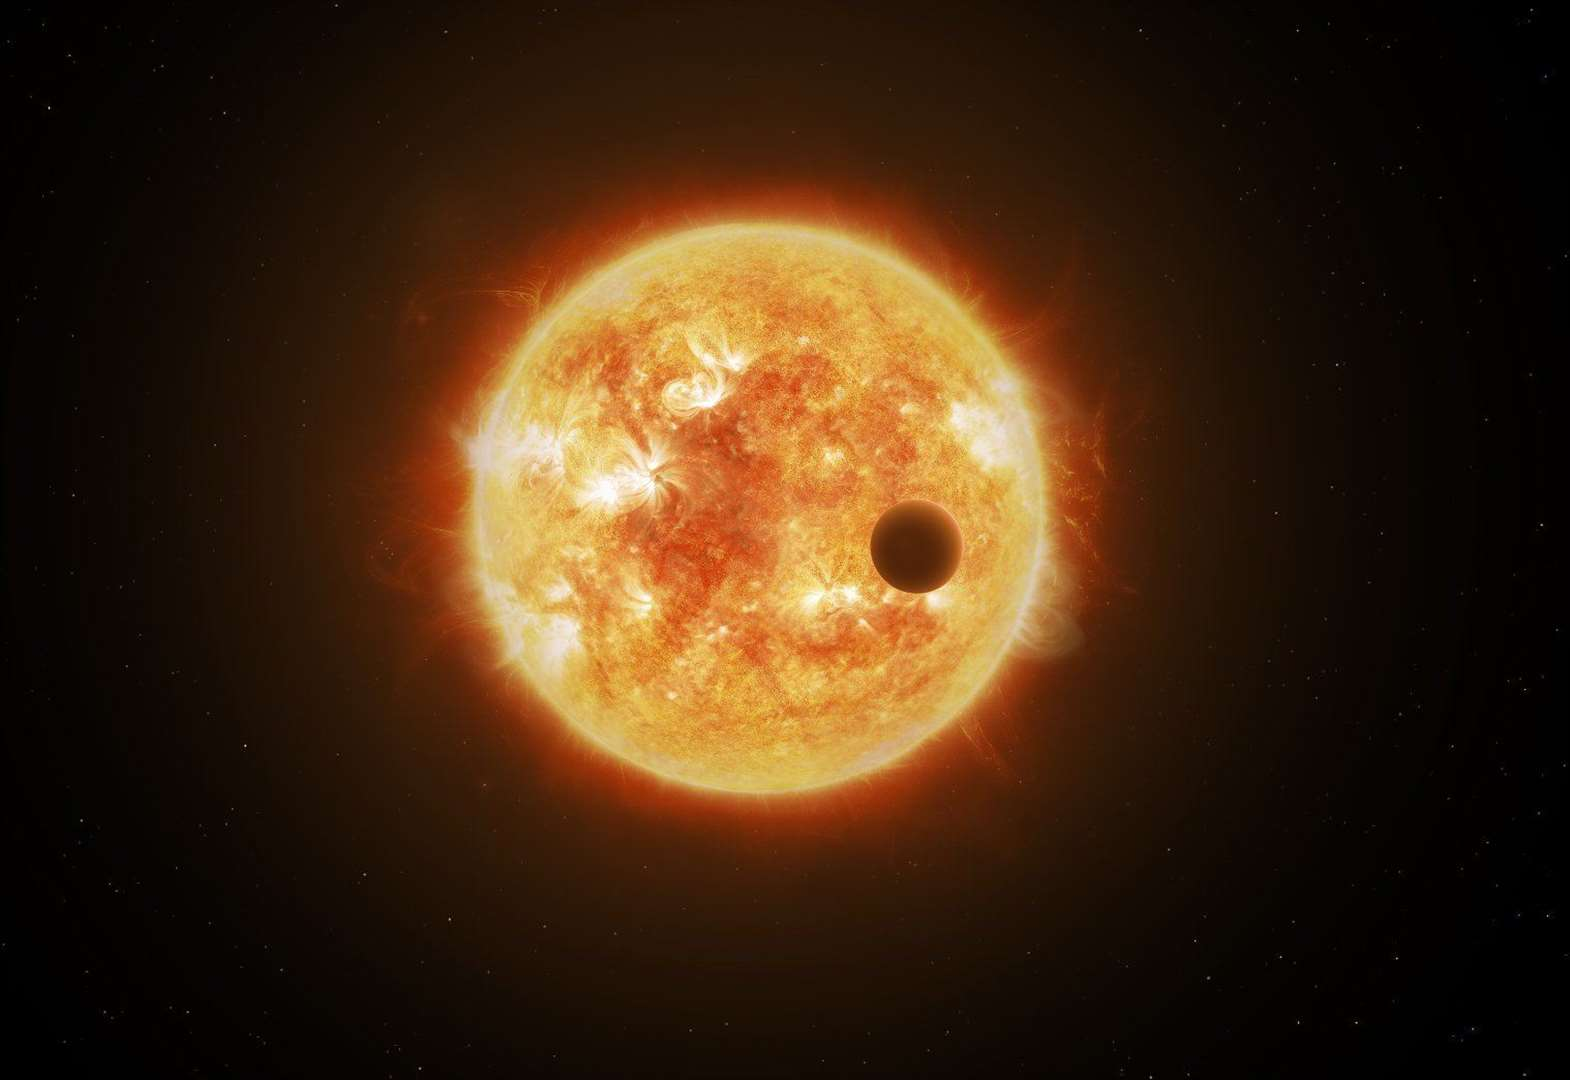 University of Cambridge's Didier Queloz wins Nobel Prize in Physics for first discovery of an exoplanet